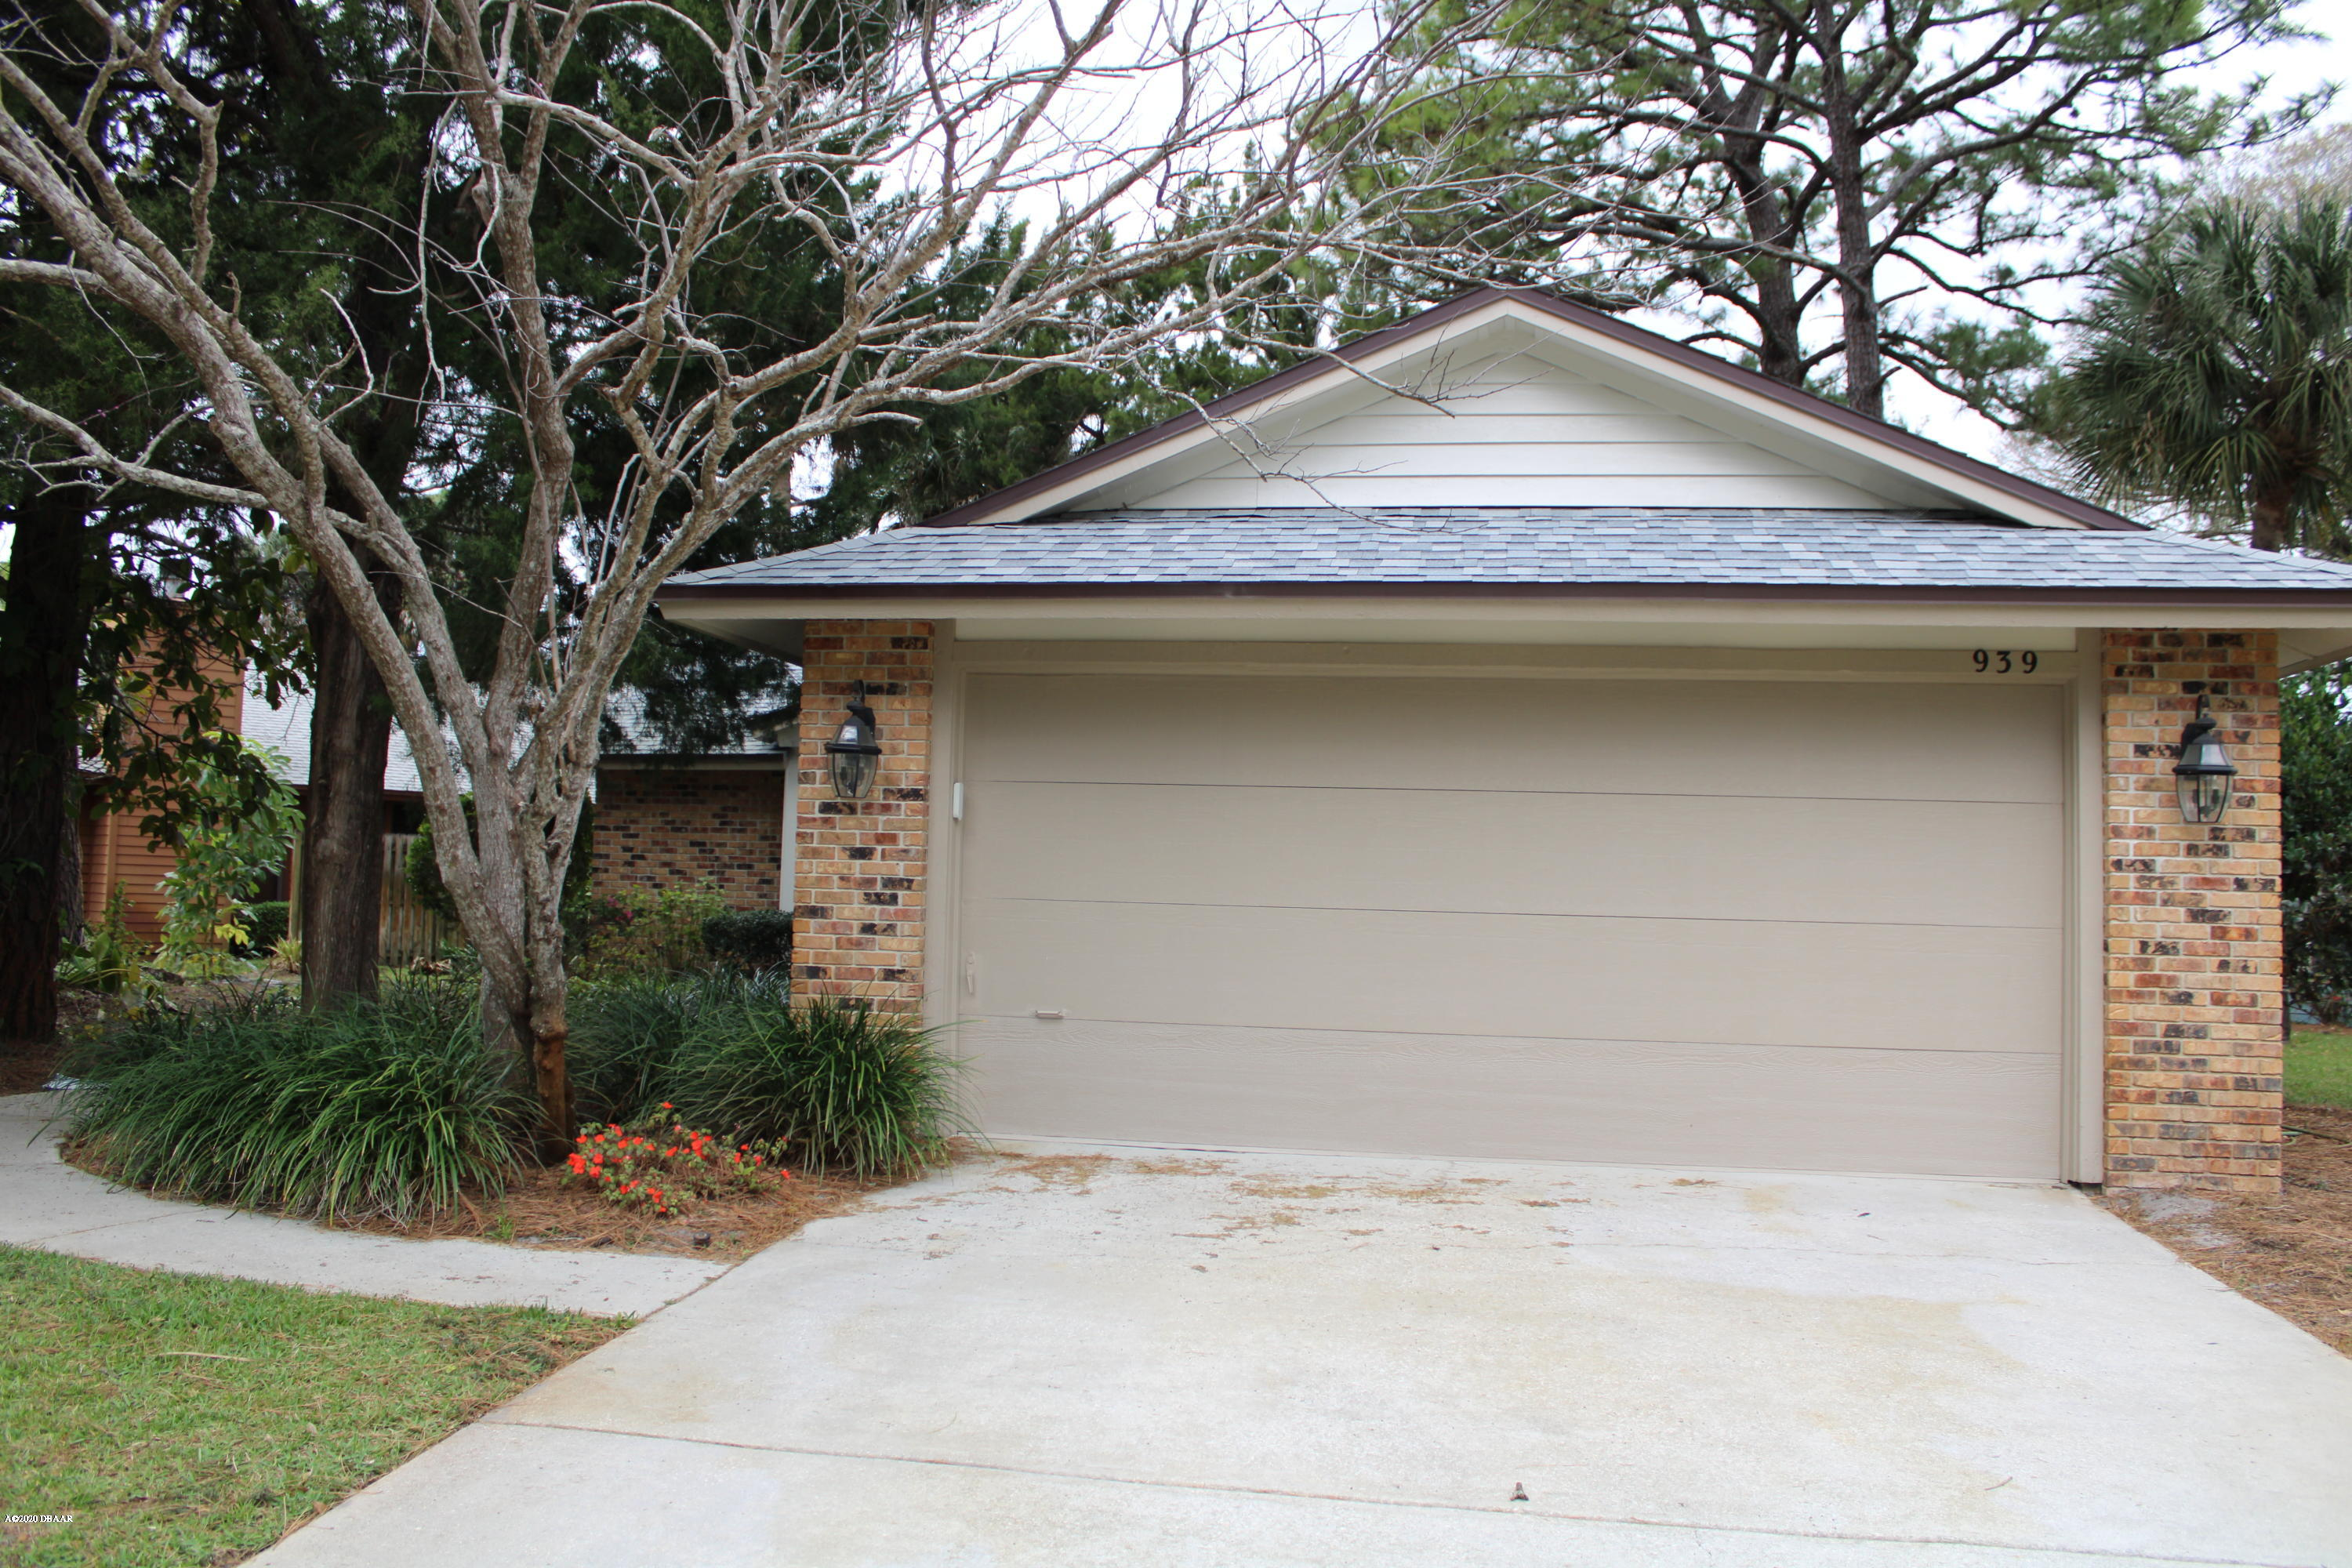 Photo of 939 N Lakewood Terrace, Port Orange, FL 32127